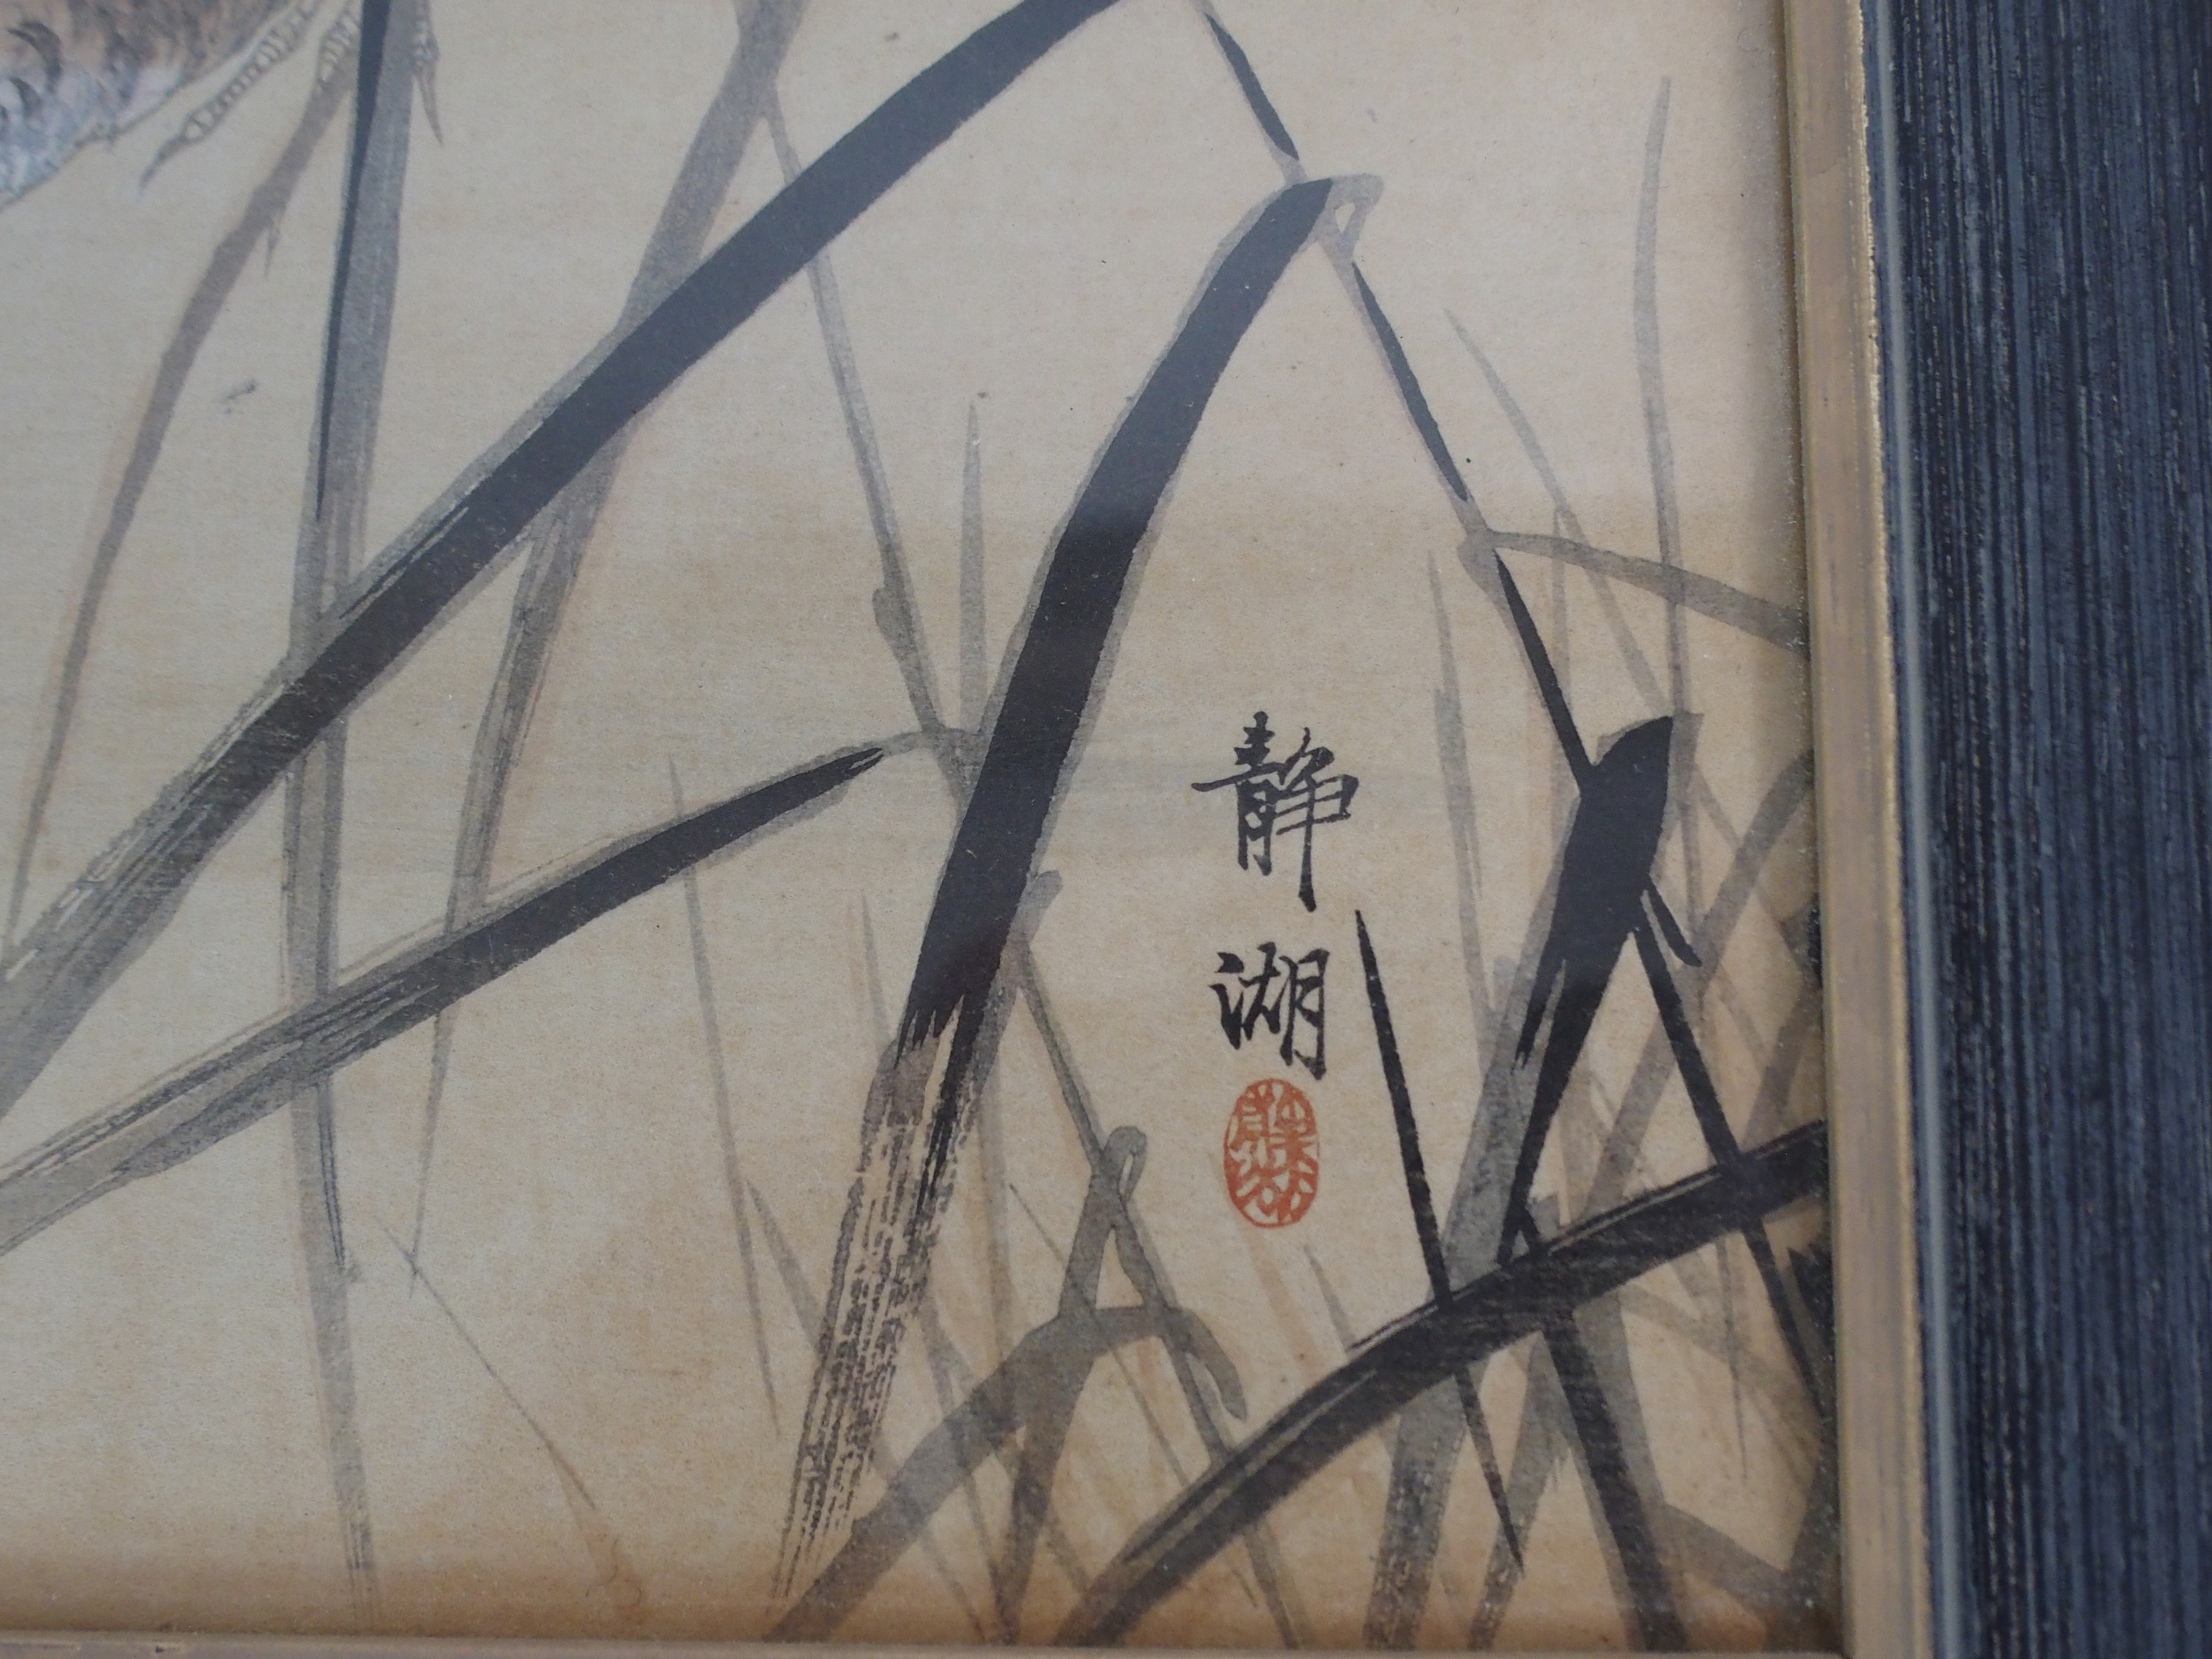 Lot 27 - A JAPANESE WATERCOLOUR OF A WATER BIRD amongst reeds, signed, 23cm x 23cm, a woodblock print of a